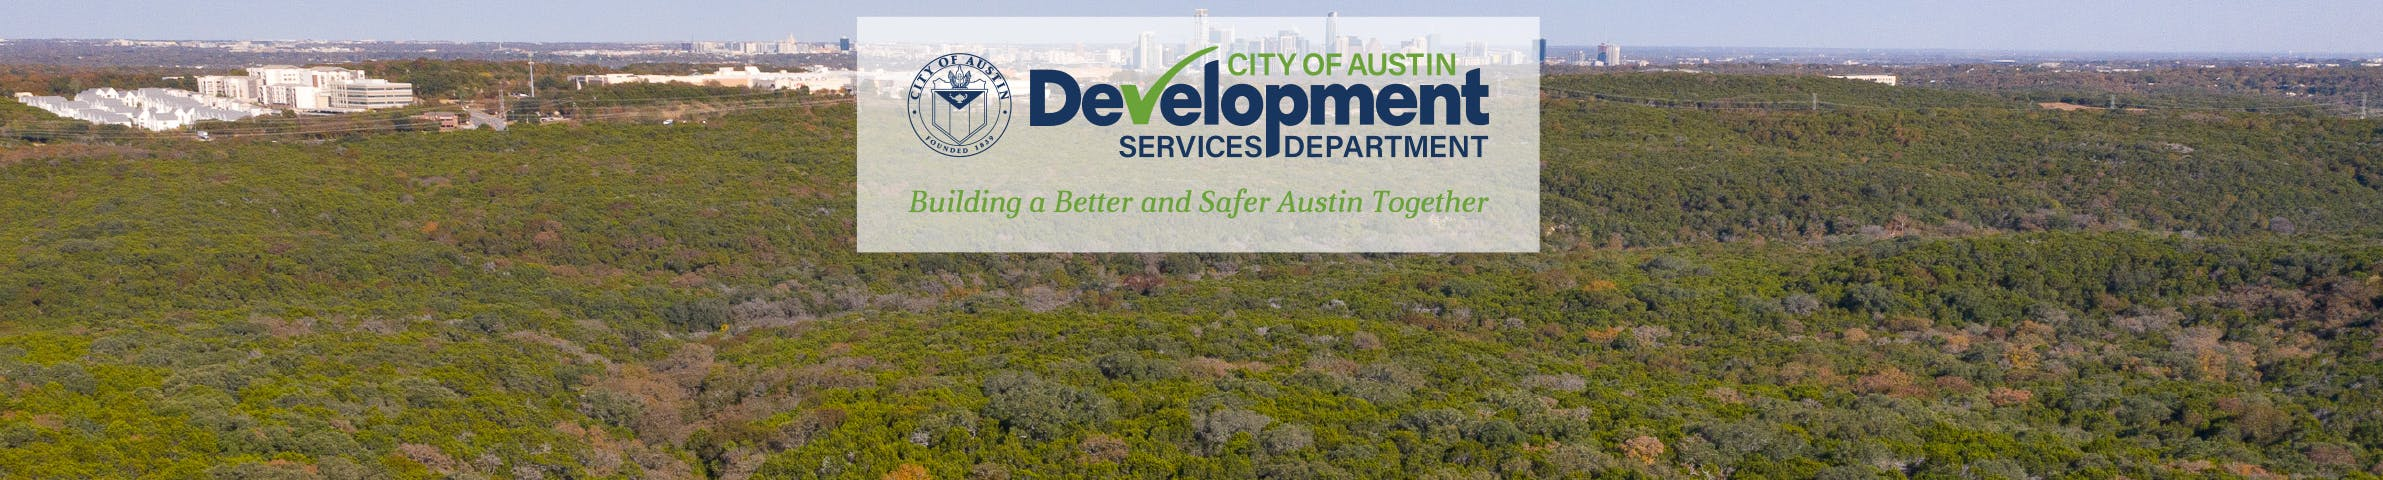 City of Austin skyline with trees in foreground and DSD logo